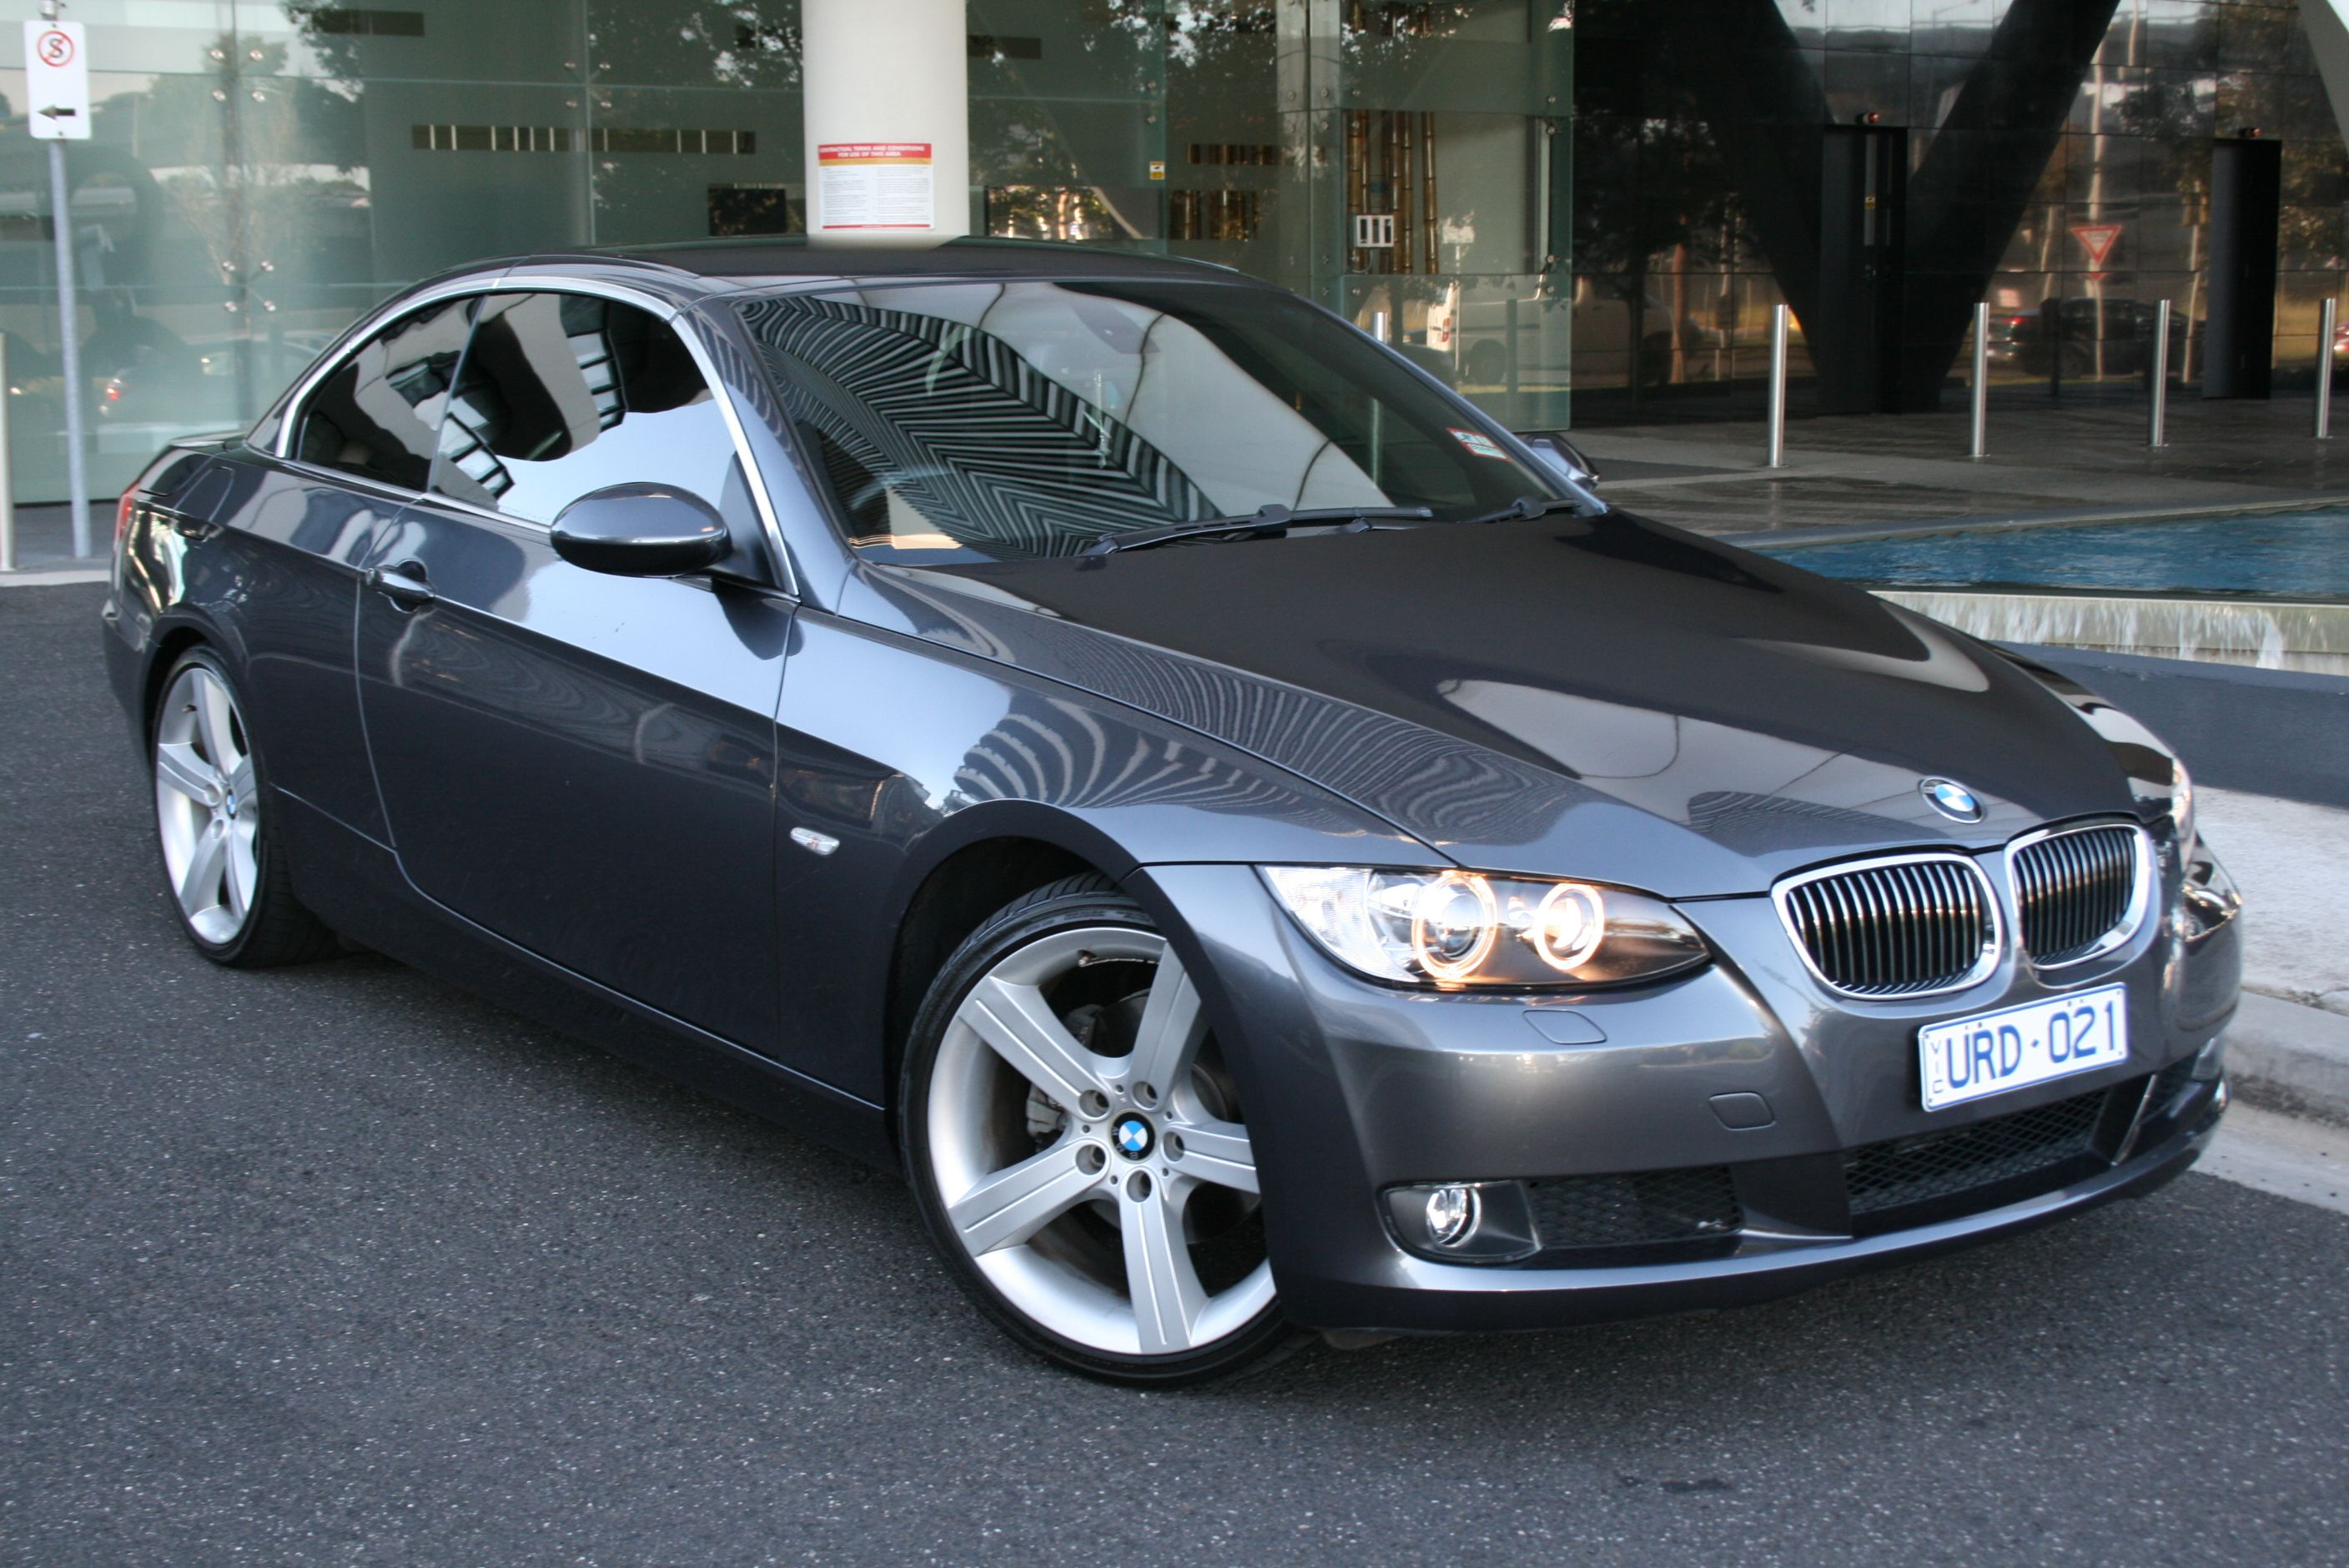 Bmw 325i e93 convertible graphite grey with black leather 19 inch sport alloy wheels